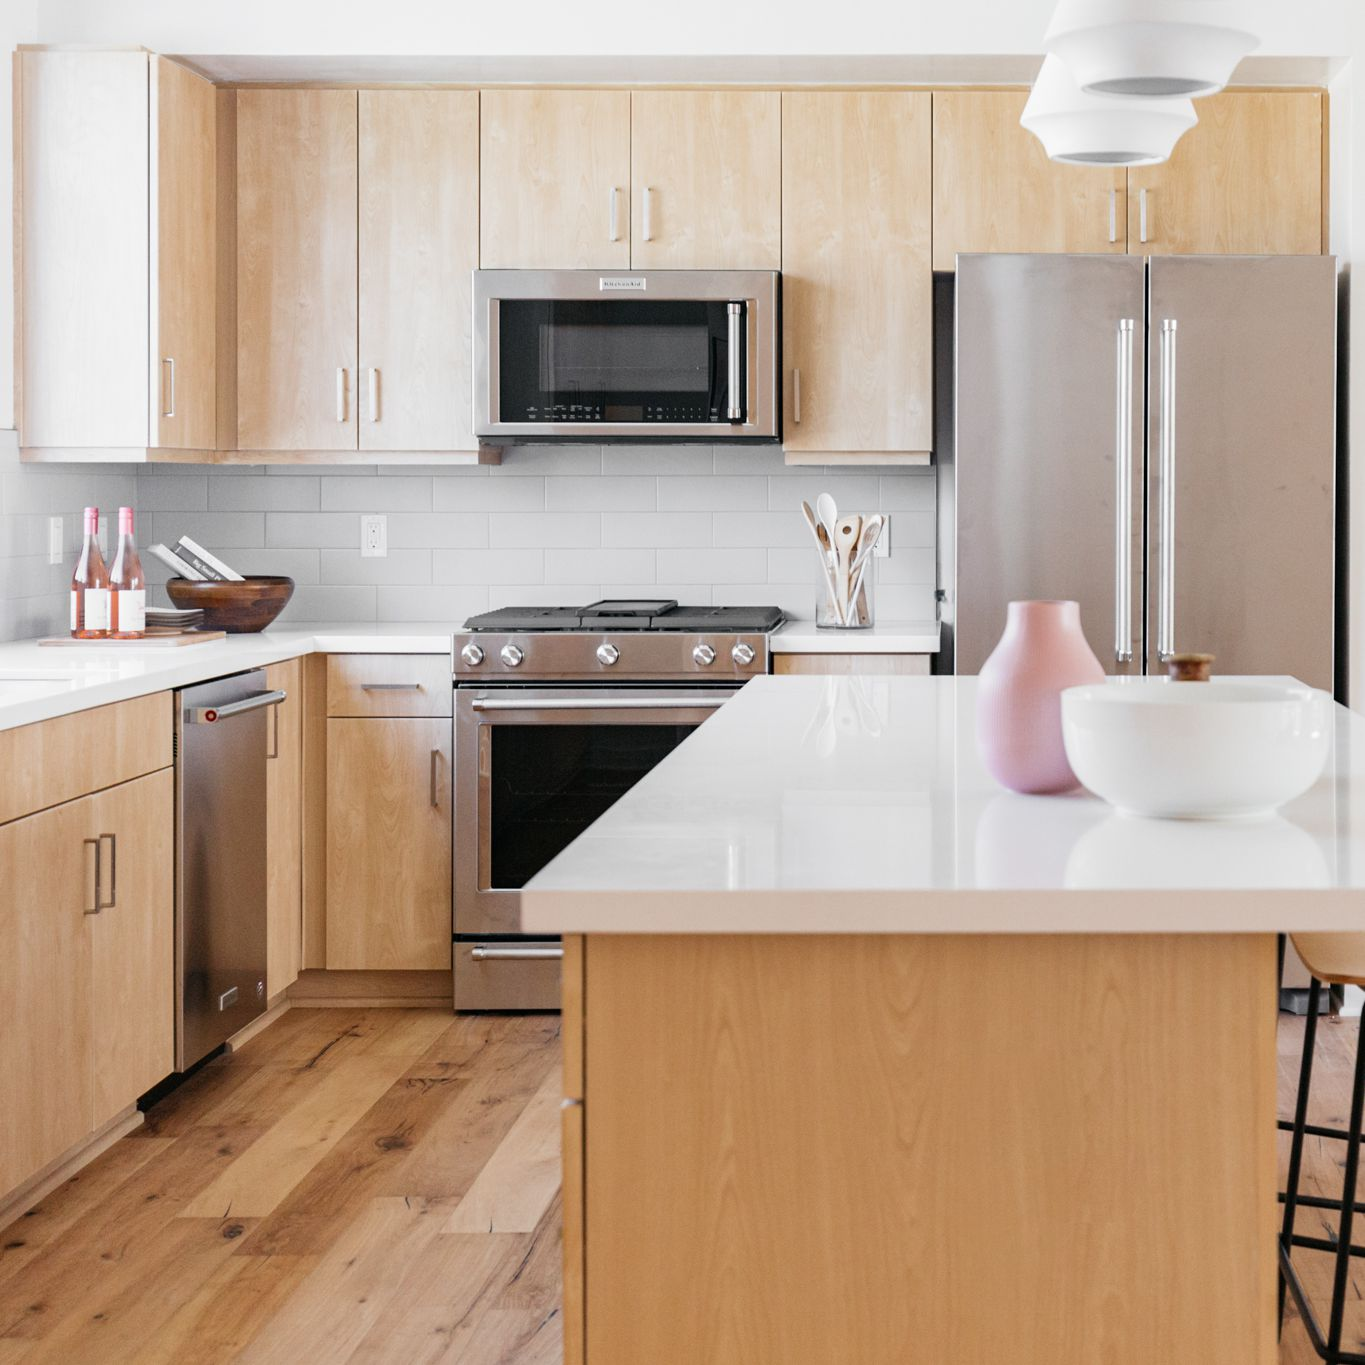 Hardwood Flooring For Kitchens Pros And Cons